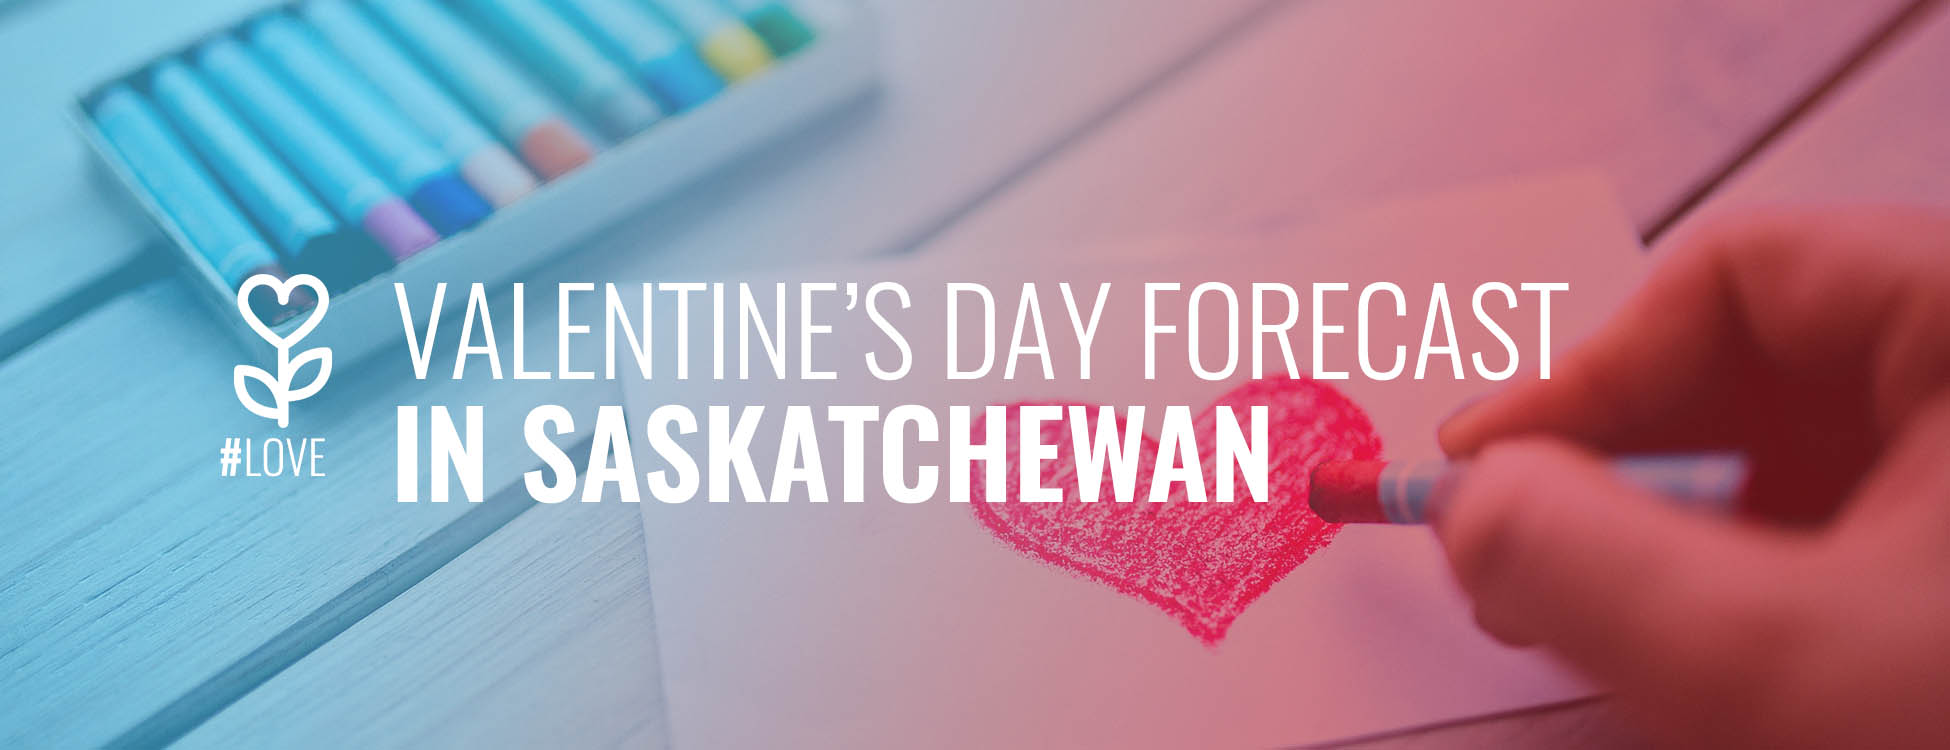 valentines-day-saskatchewan-love